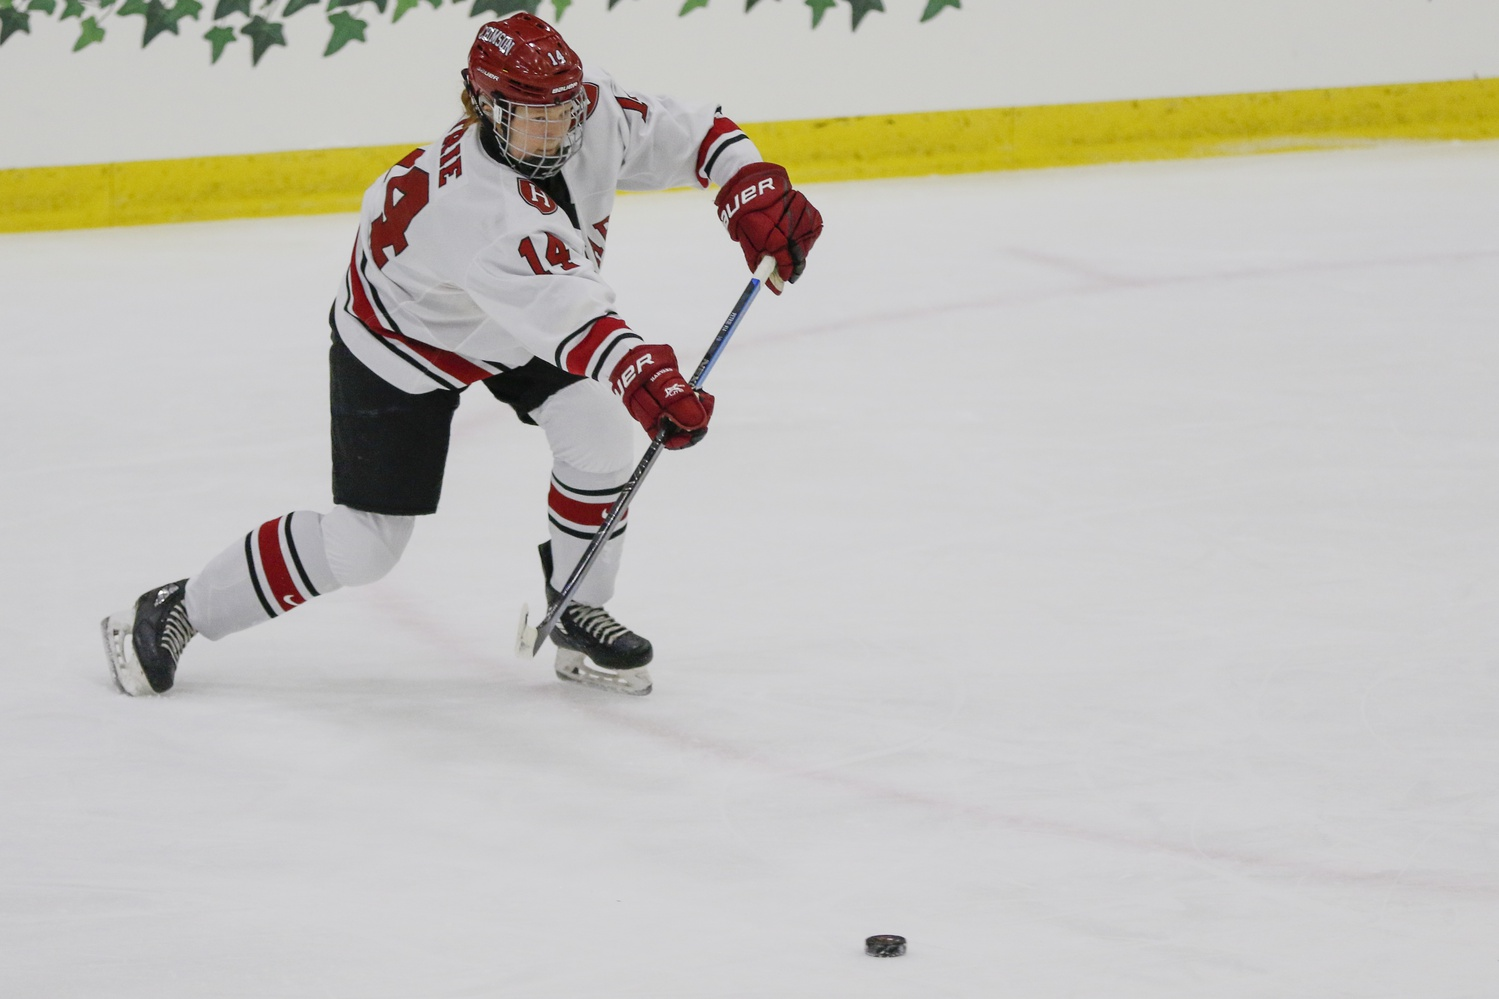 Sophomore forward Dominique Petrie found the scoresheet often against Union and RPI, tallying seven points (four goals, three assists) by the time the weekend was over.